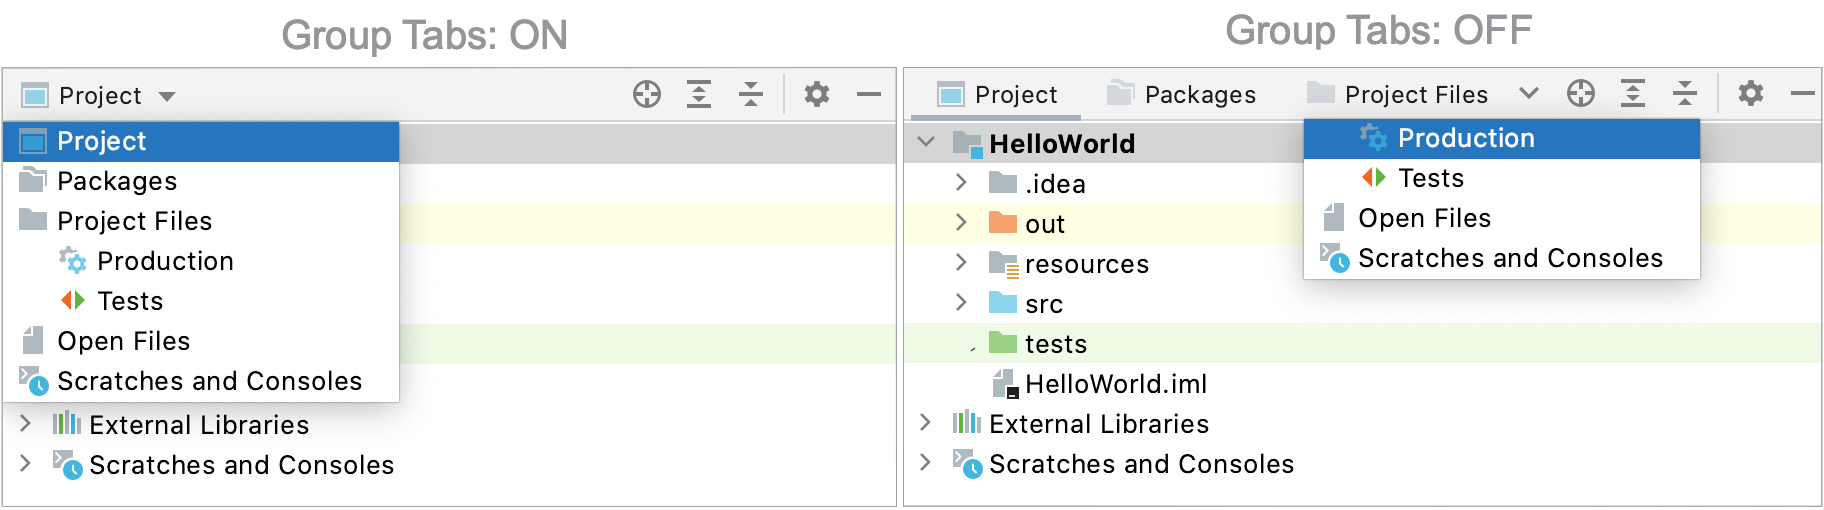 project tool window views